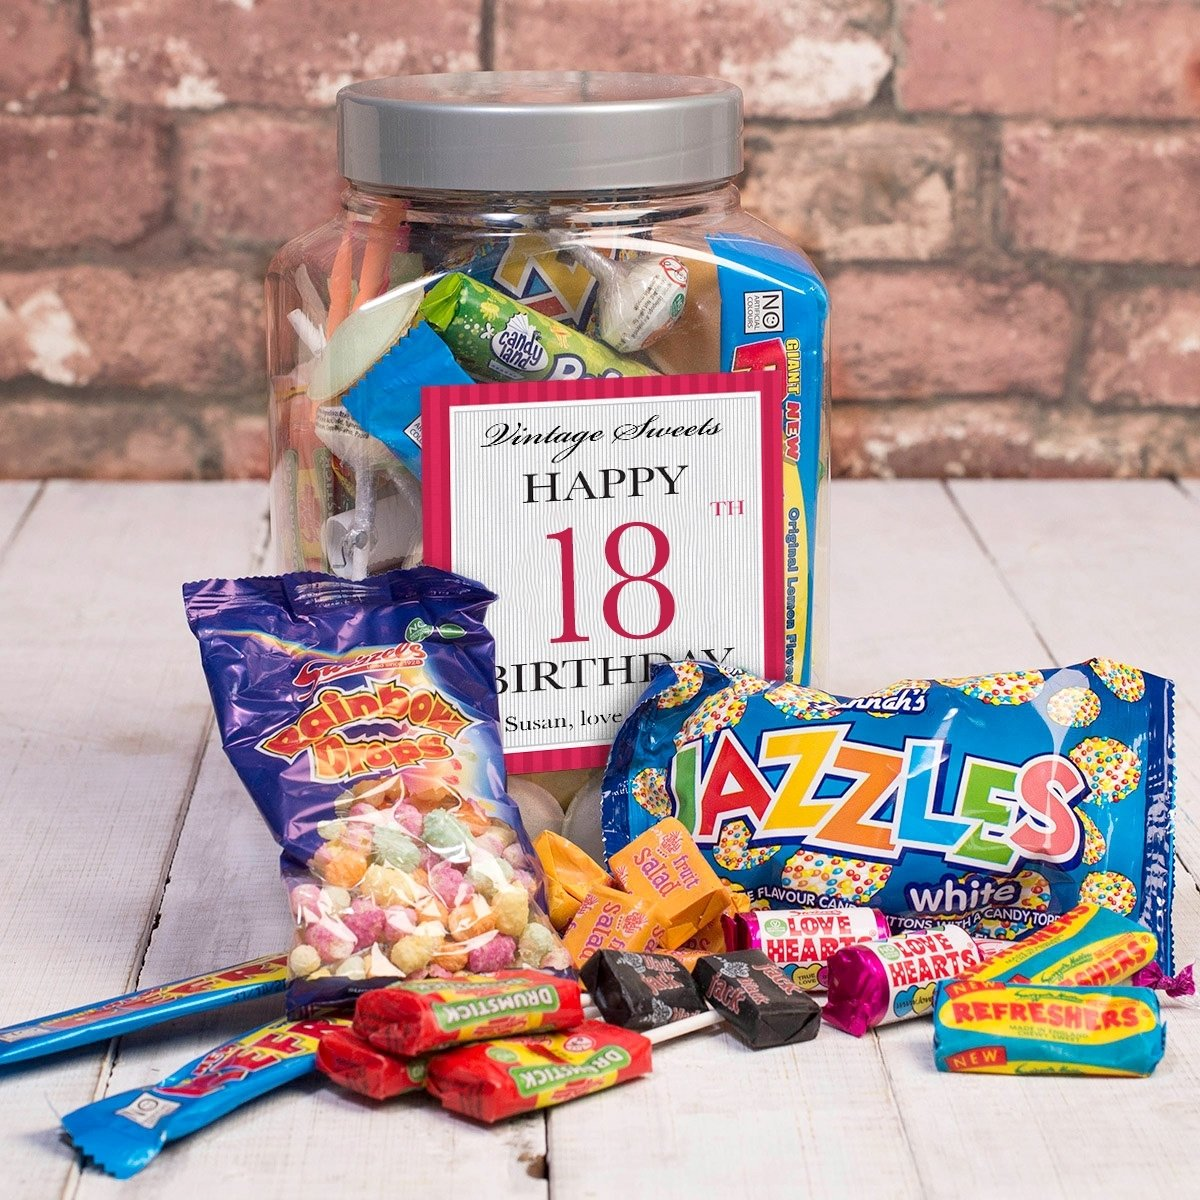 10 Most Recommended Ideas For 18Th Birthday Gift 18th birthday gifts ideas gettingpersonal co uk 2 2020